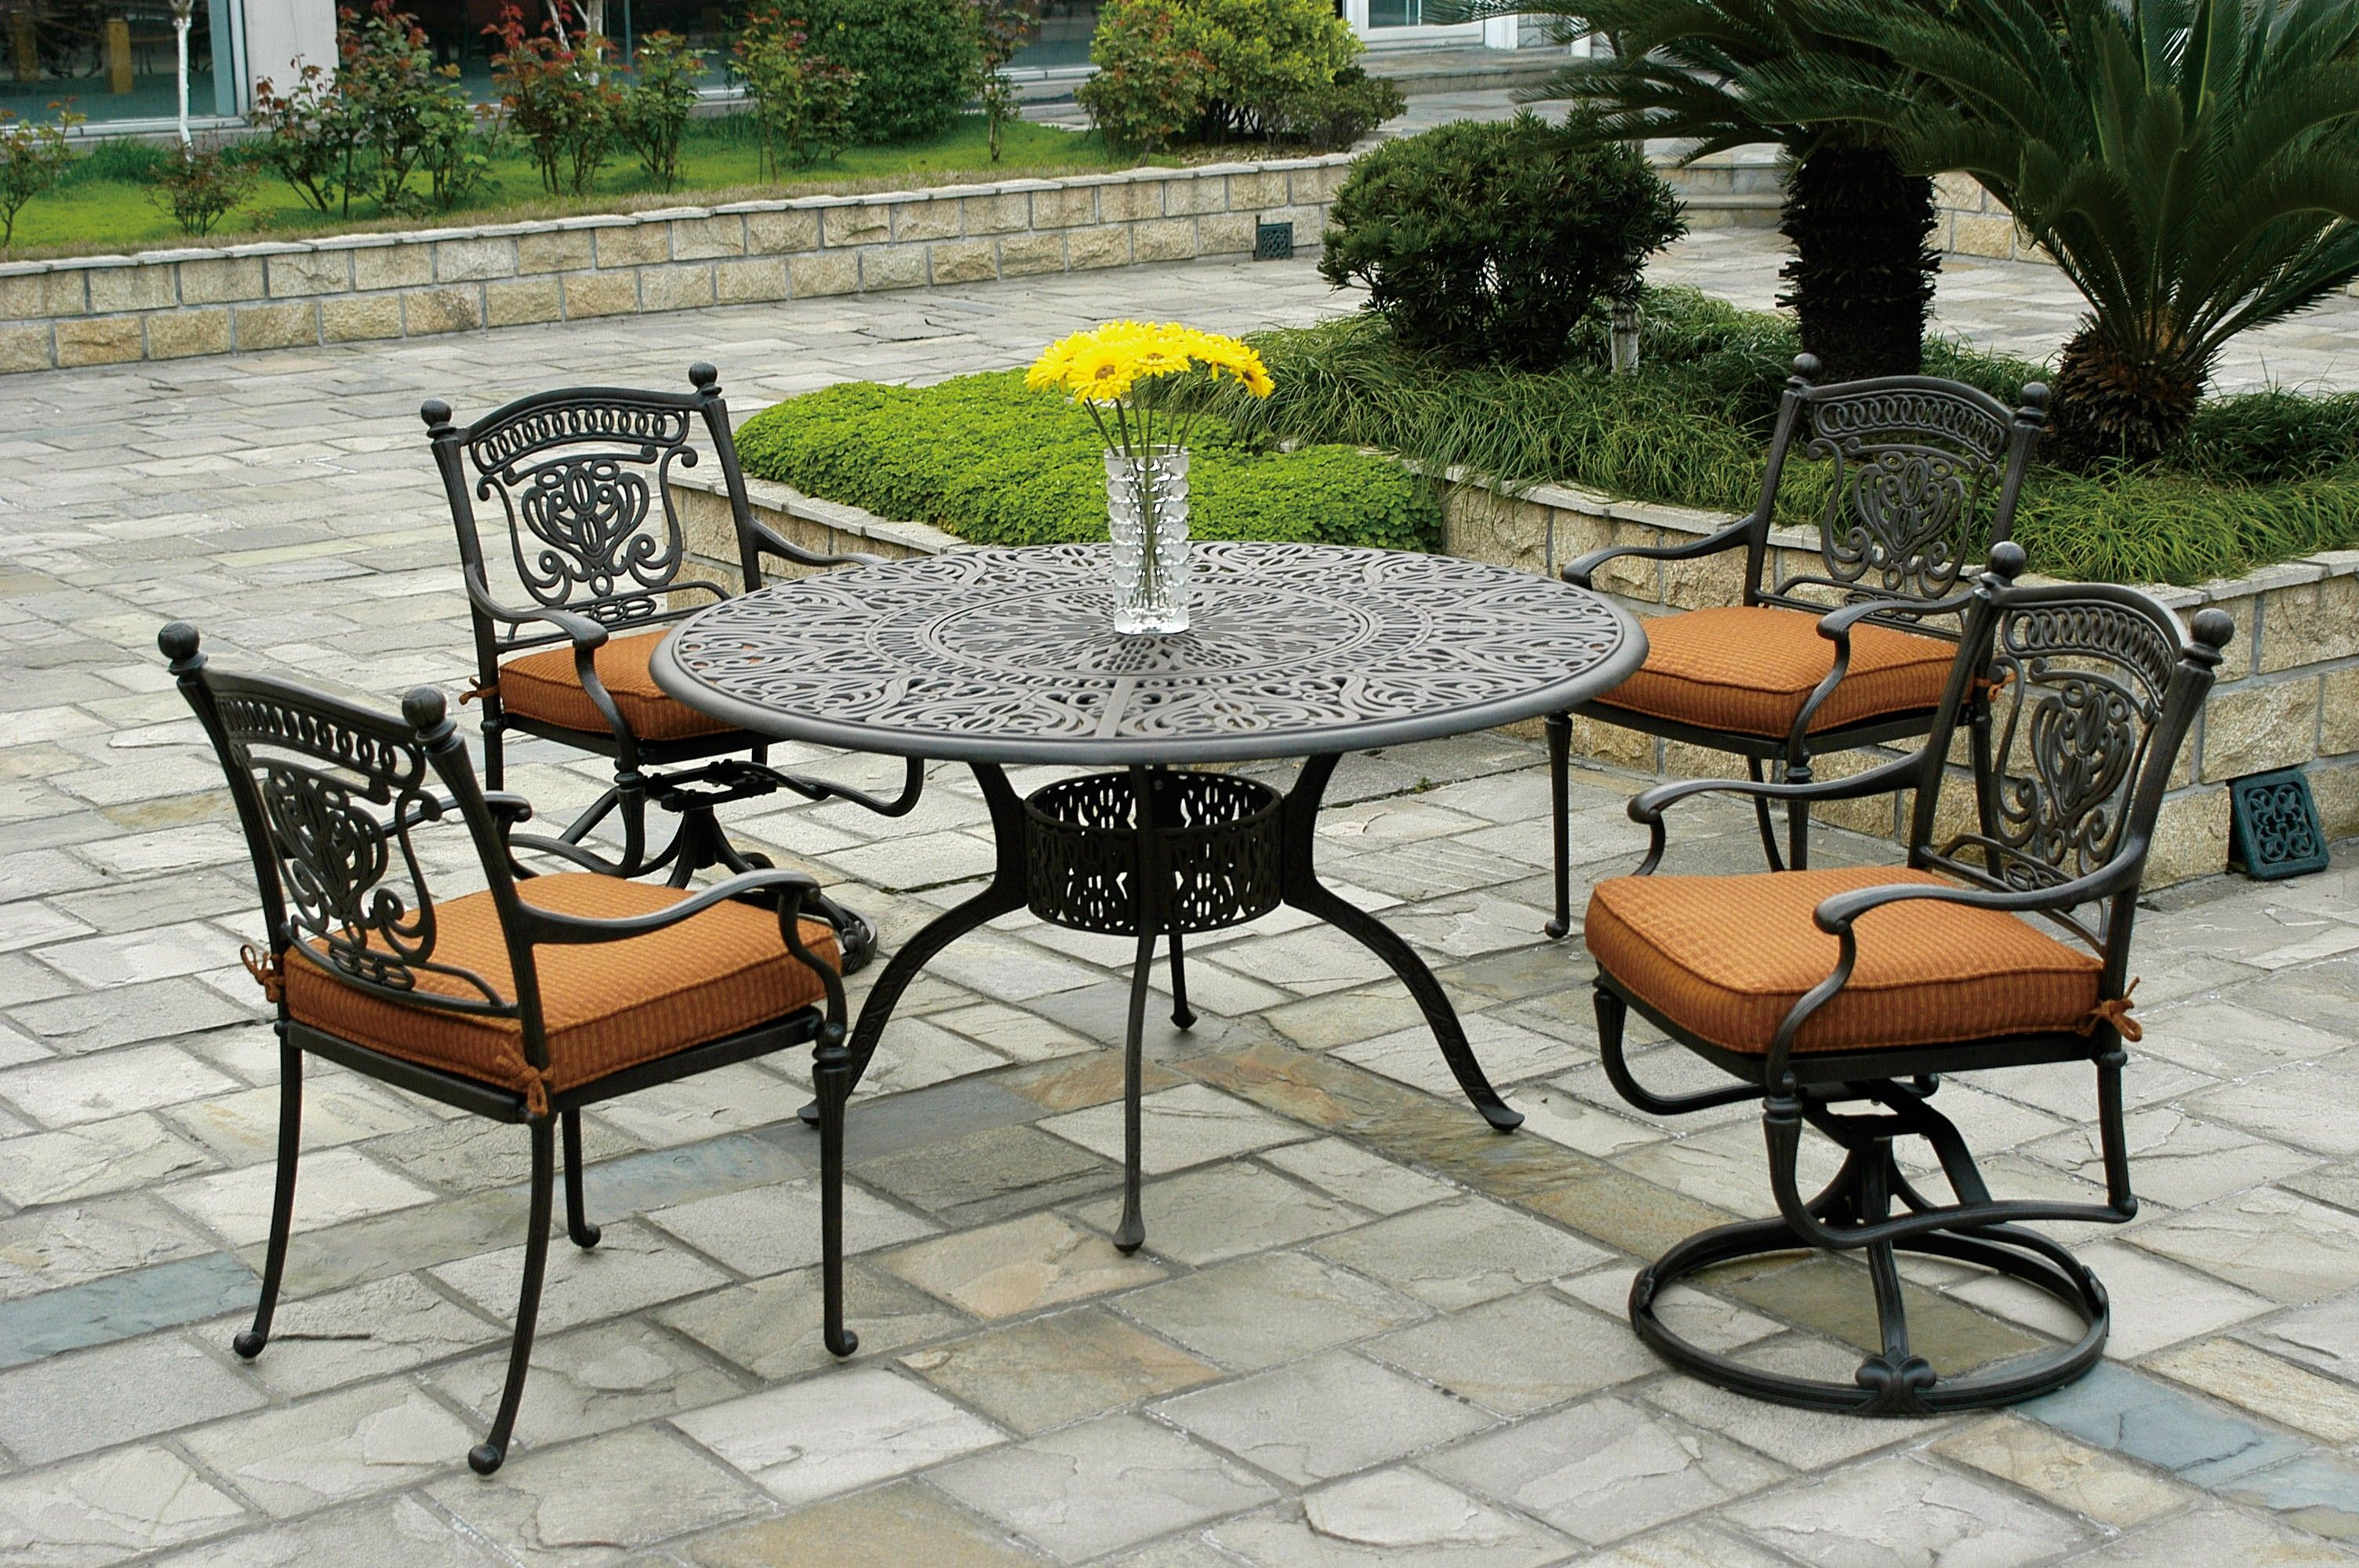 Cast Iron Patio Set Table Chairs Garden Furniture  http